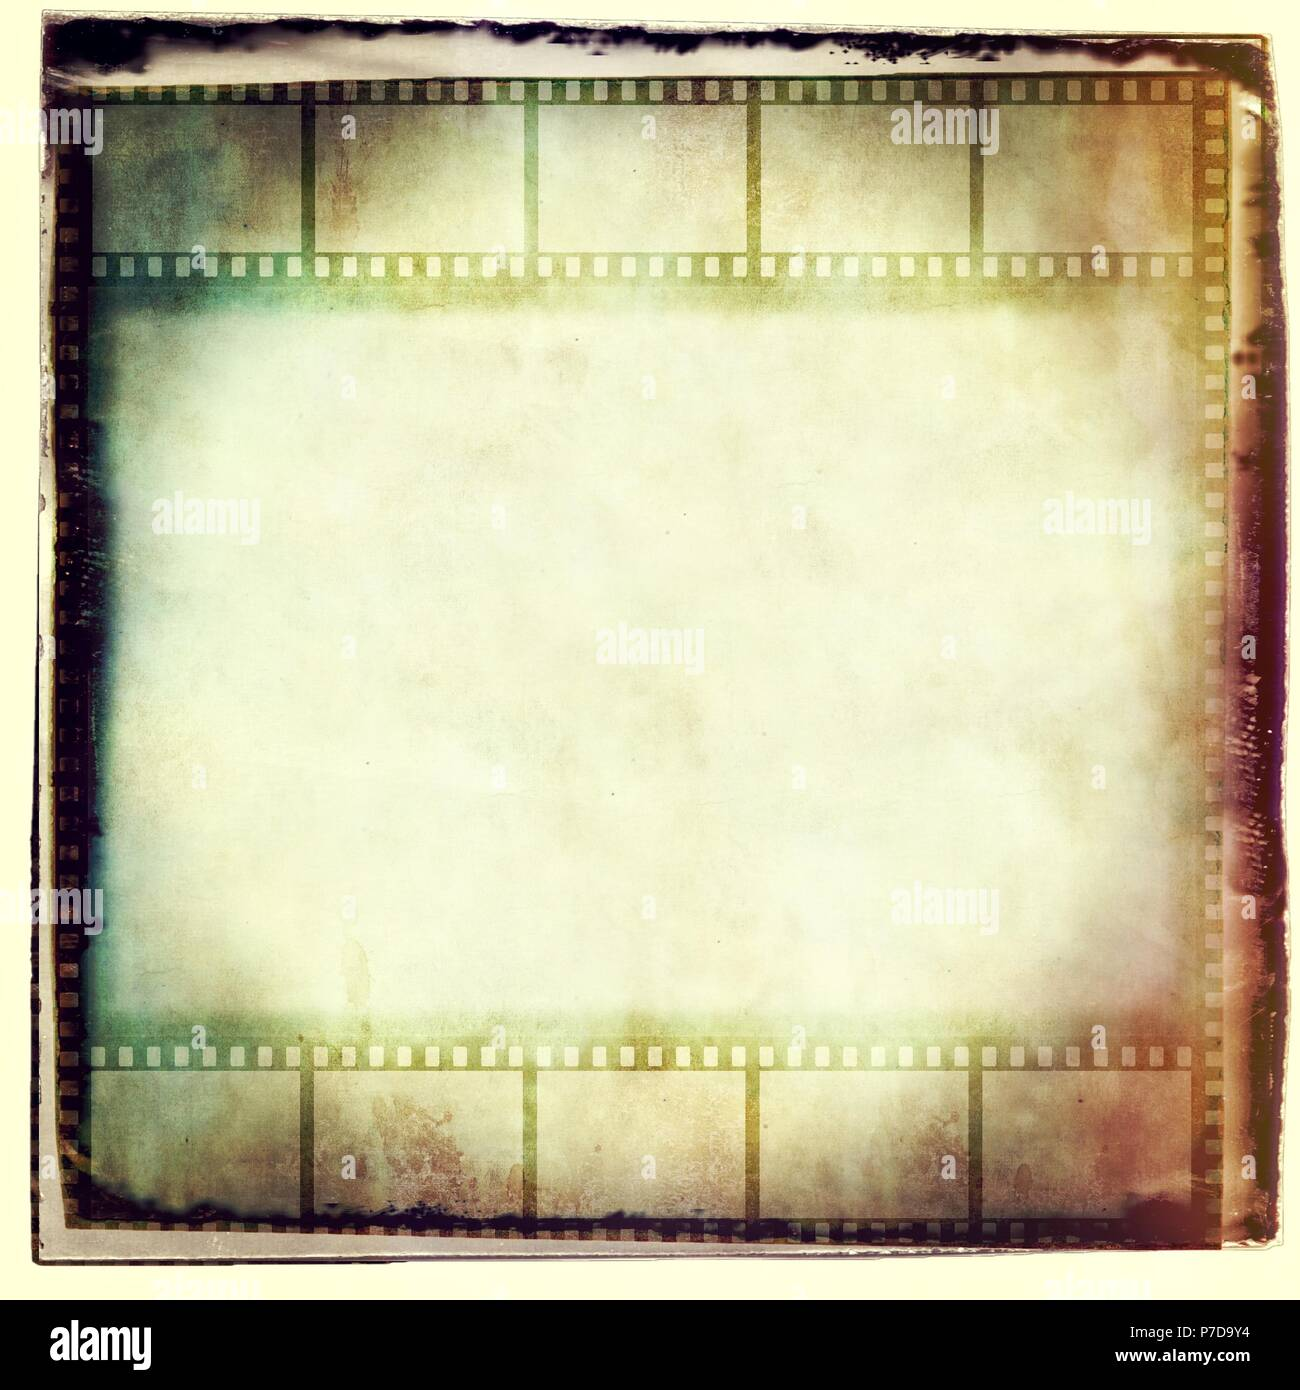 Vintage film strip frame in sepia tones. - Stock Image